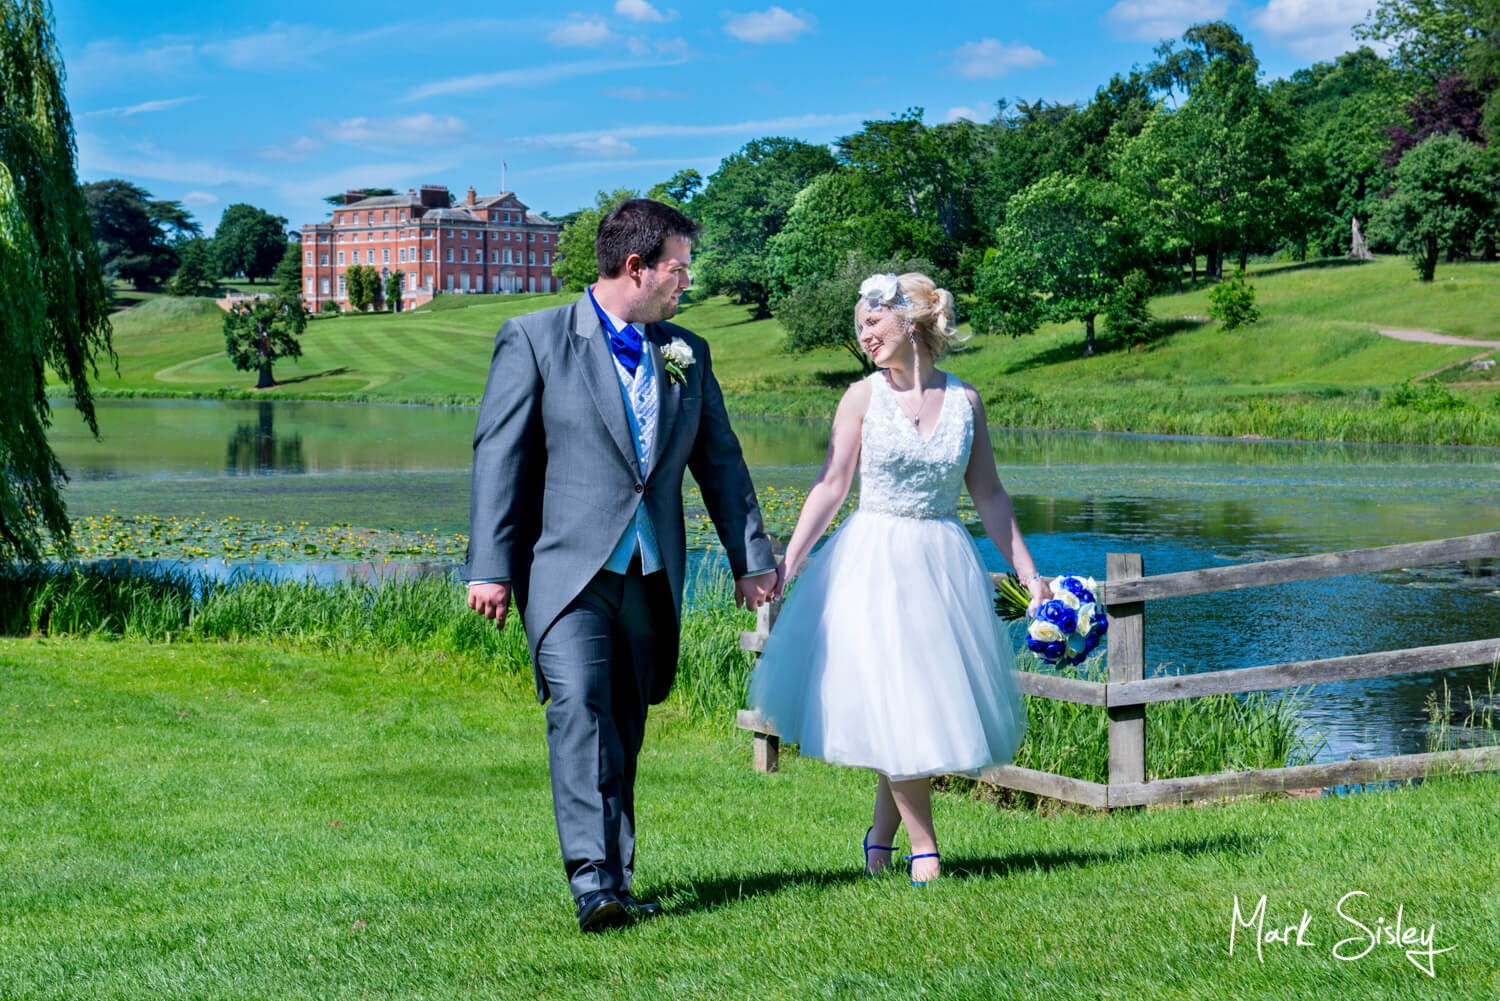 Wedding photography of the newlyweds walking in the gardens of Brocket Hall in Hertfordshire